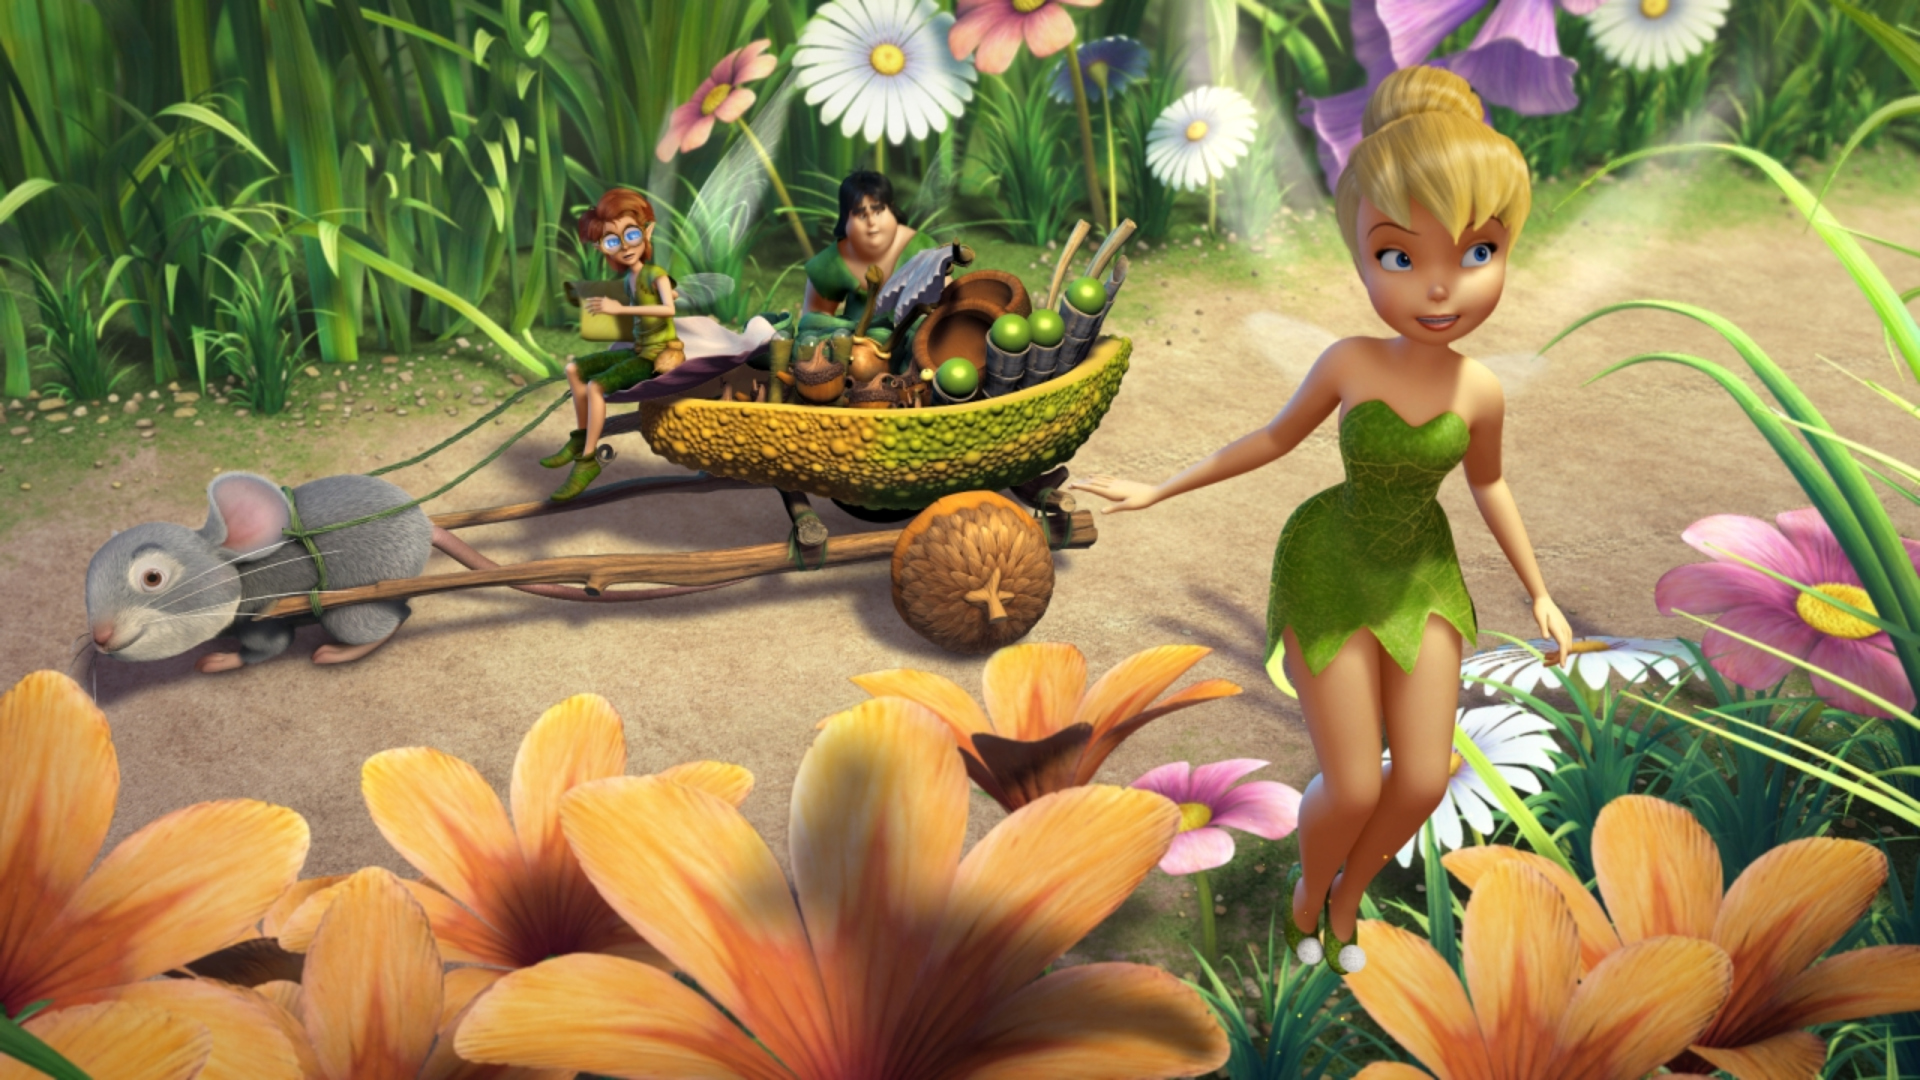 Tinker Bell Wallpapers High Quality Download Free